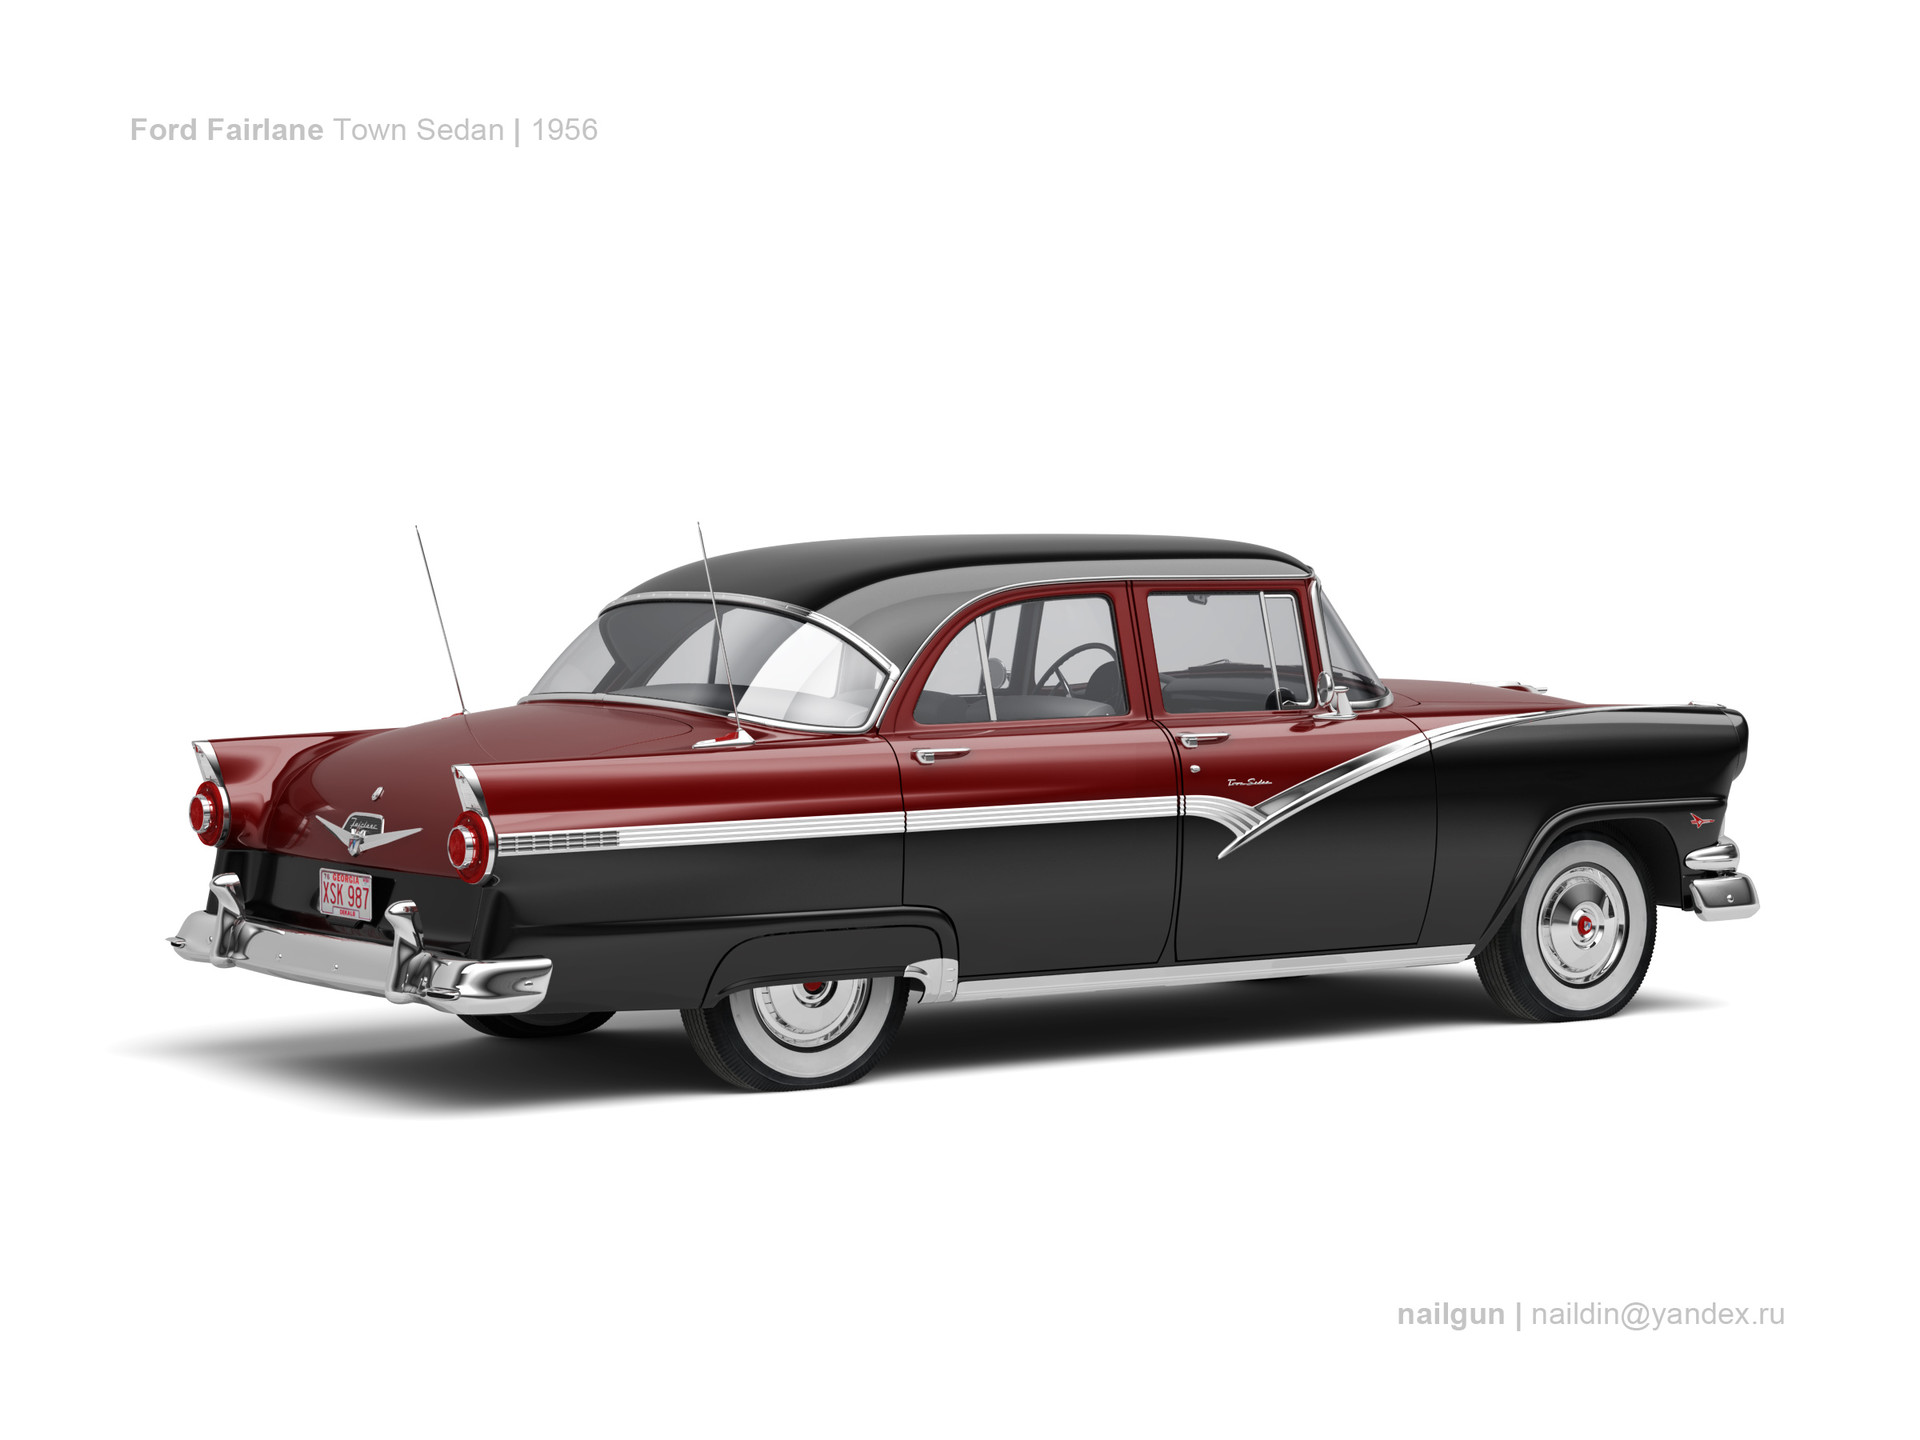 Nail khusnutdinov usa ford fairlane town sedan 56 1